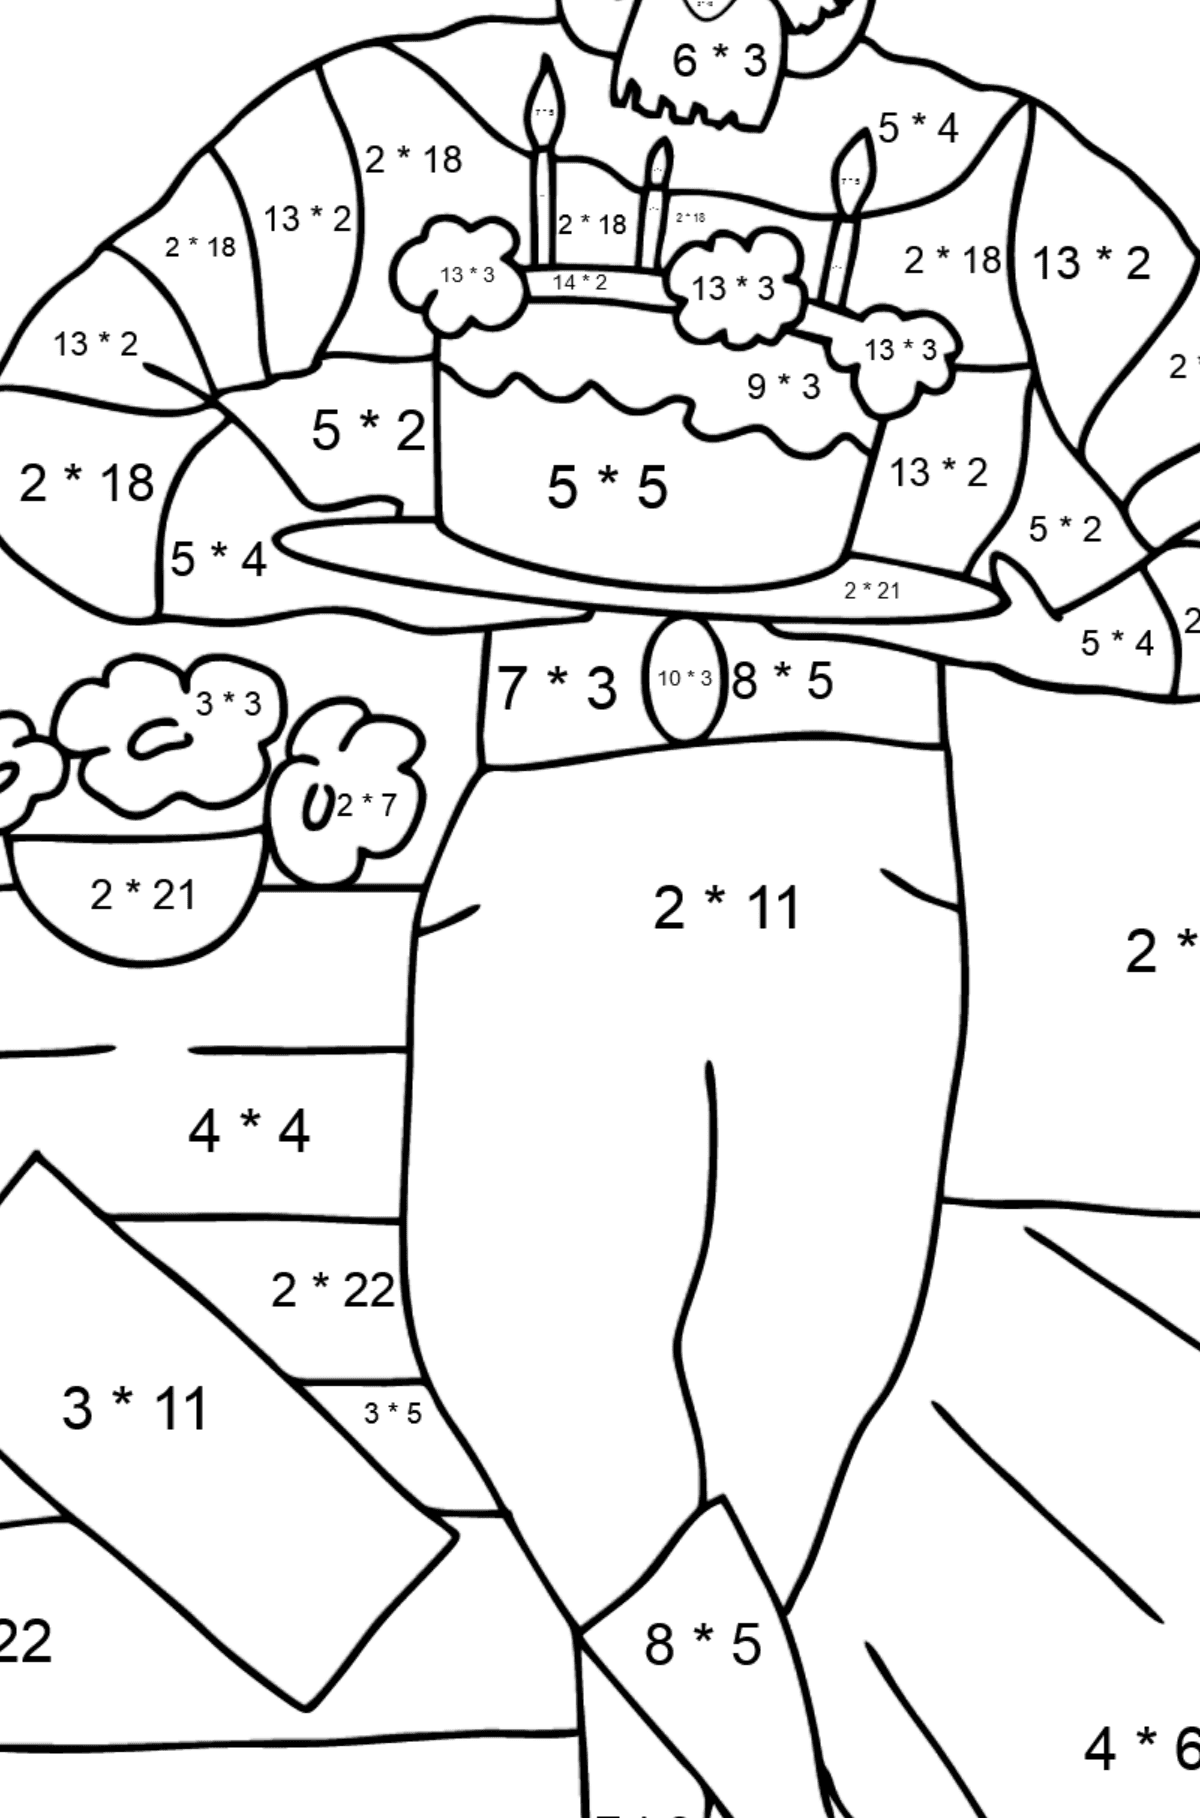 Coloring Page - A Pirate is Celebrating his Birthday - Math Coloring - Multiplication for Kids